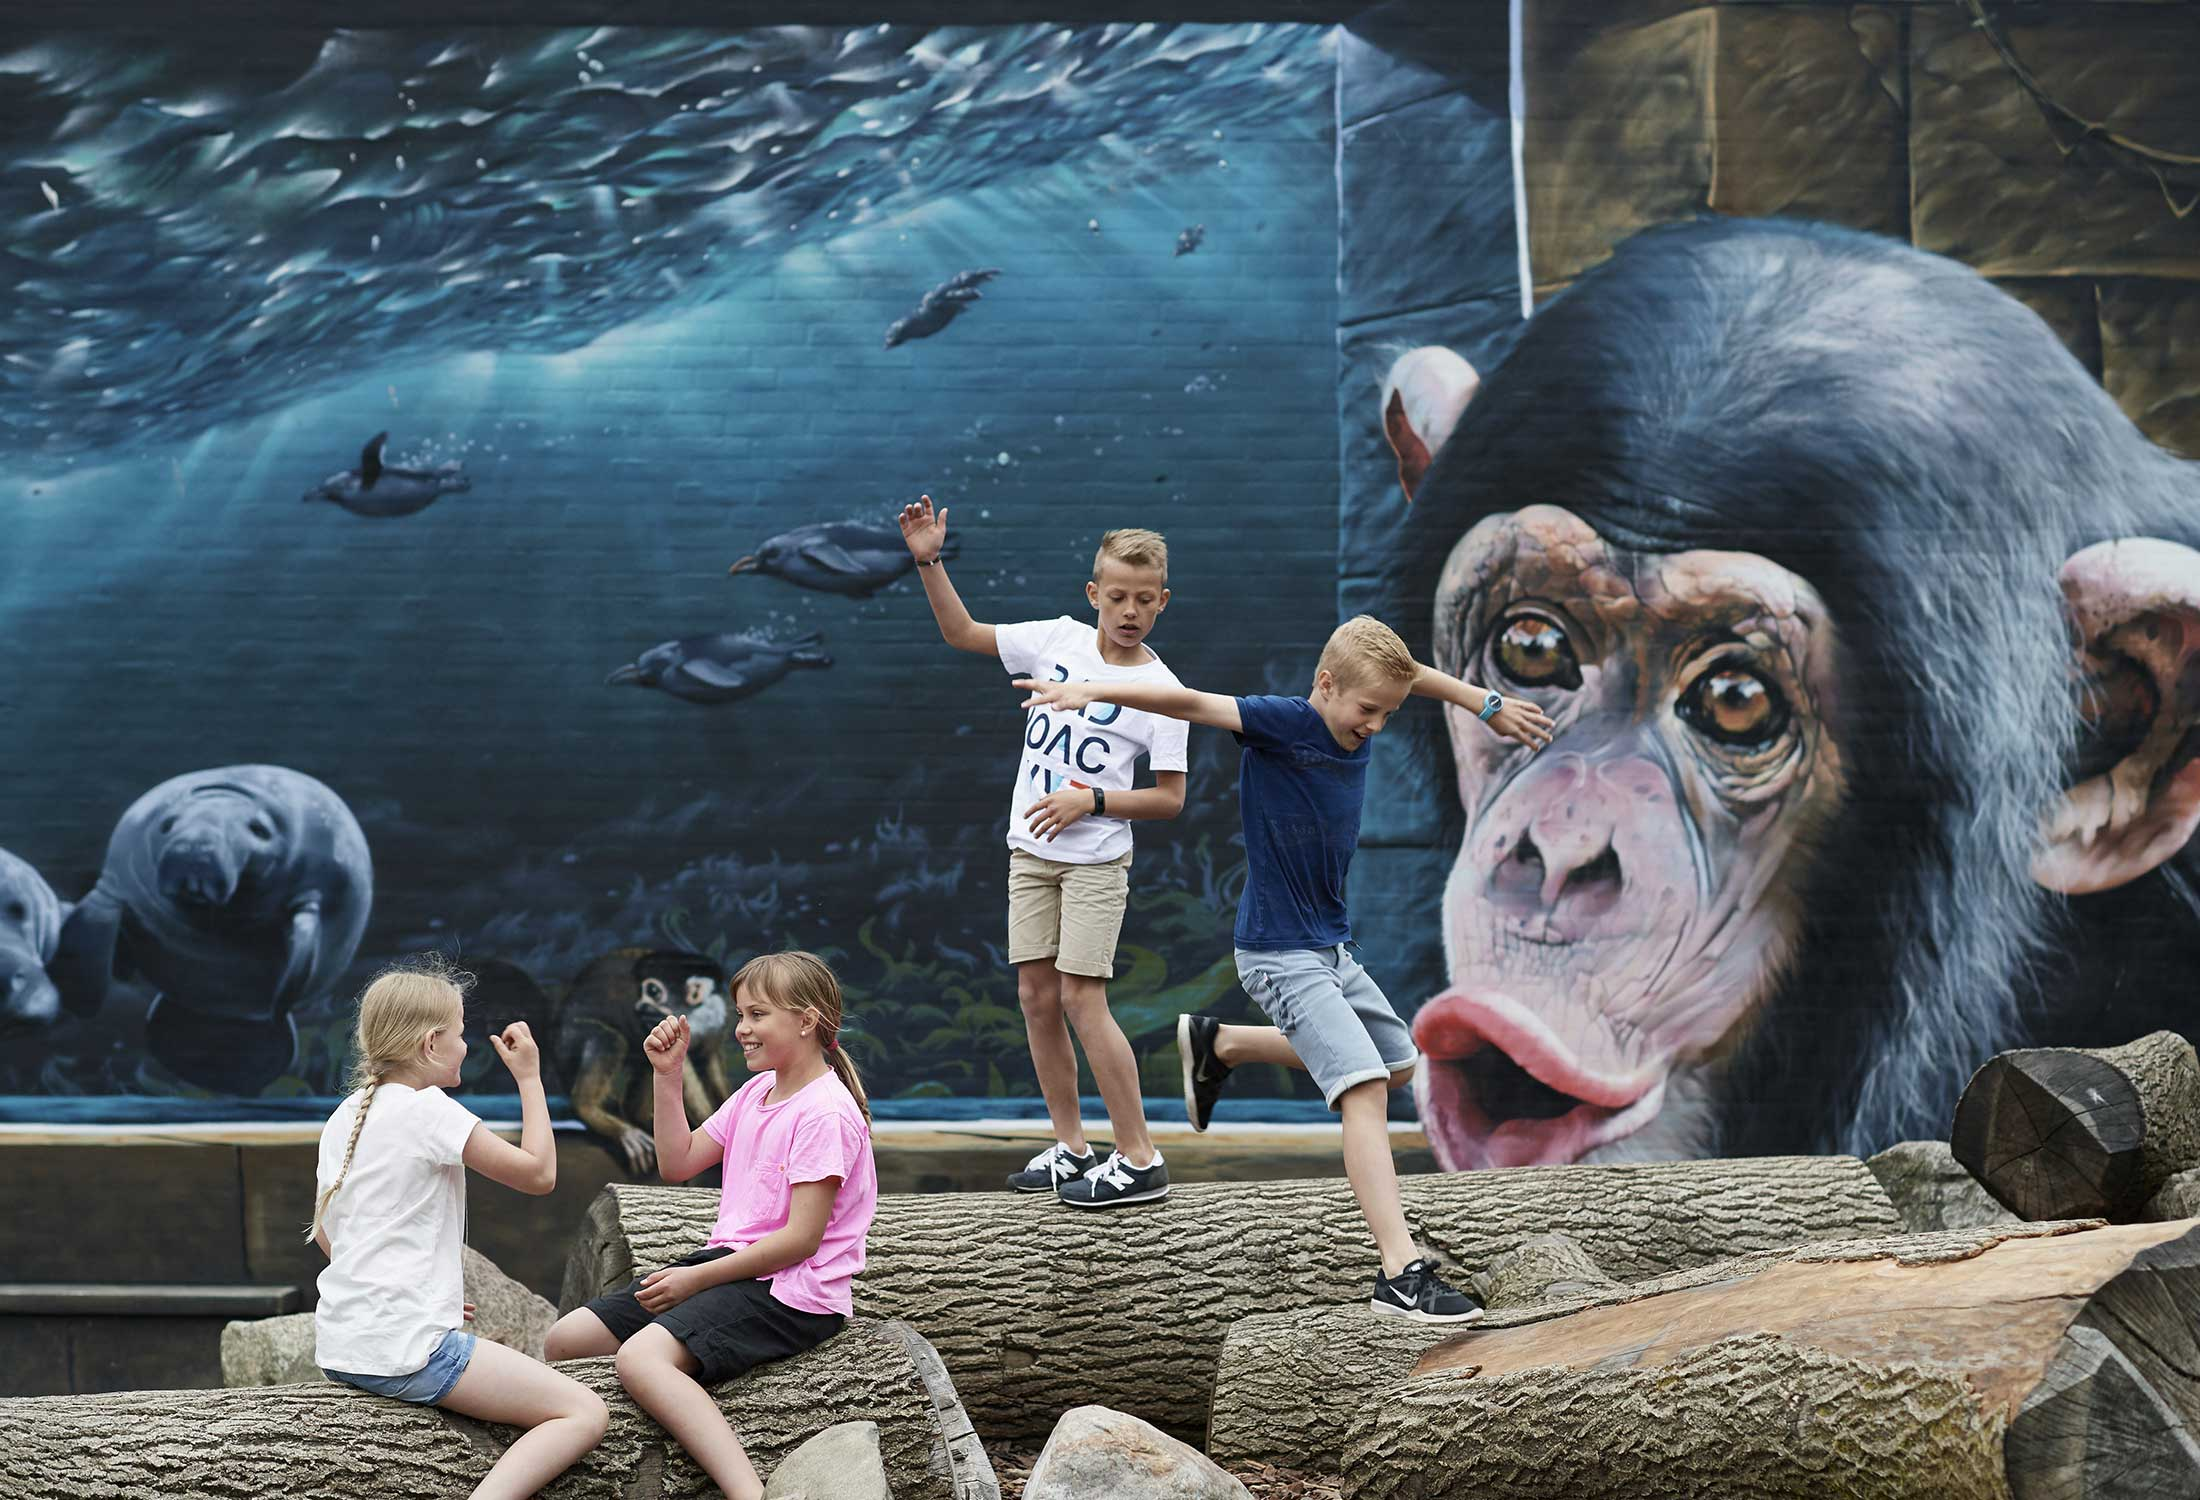 A magical and memorable mural by Tasso at Odense Zoo in Denmark that shows several animals.